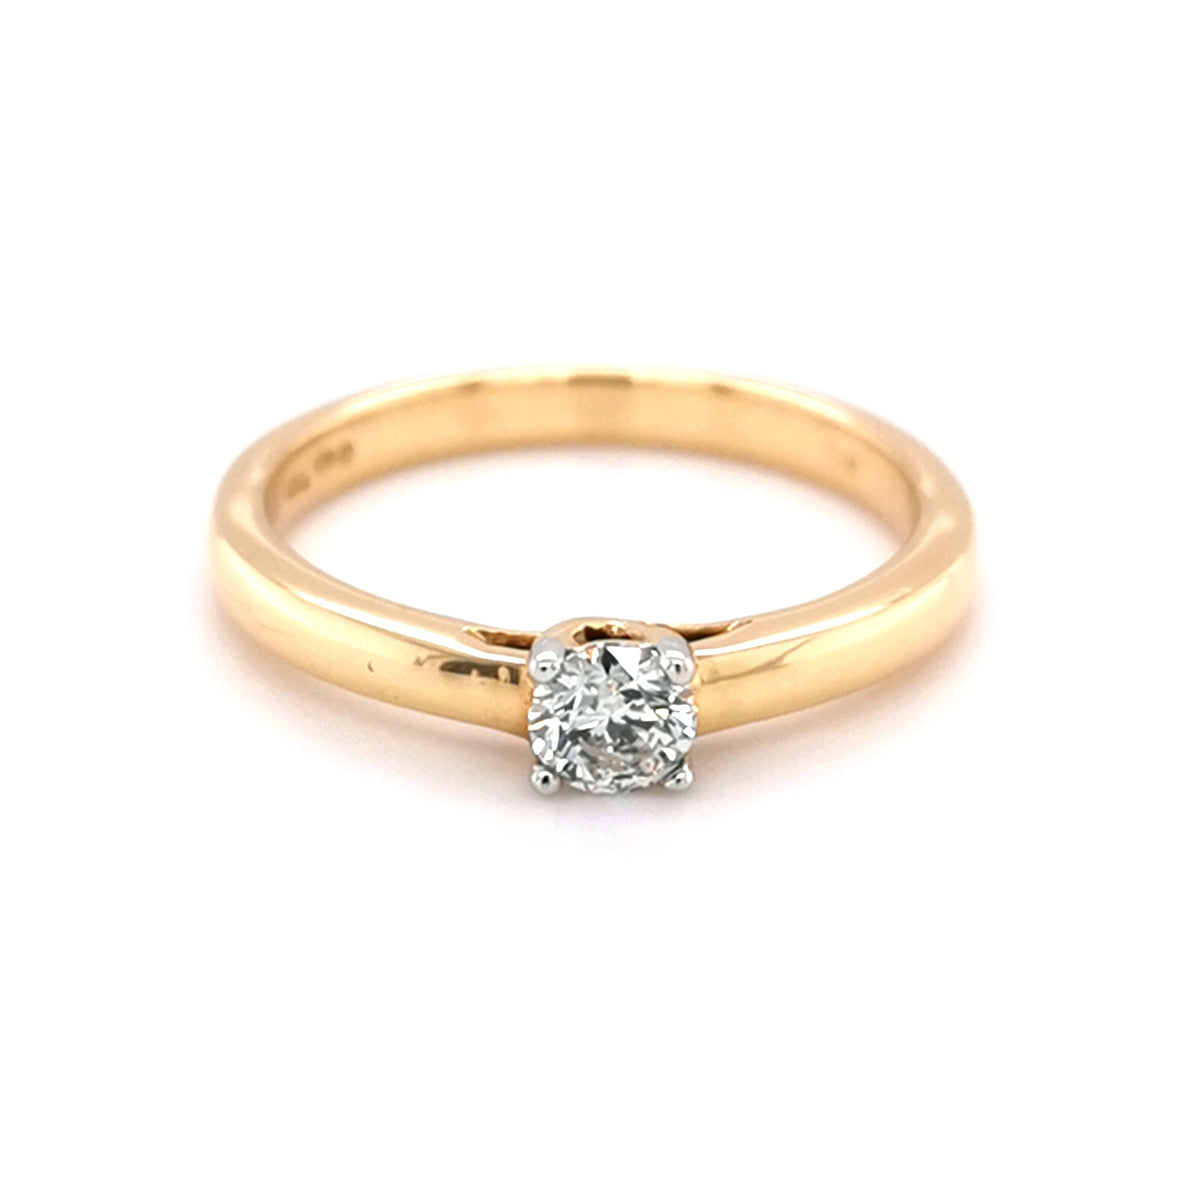 18ct Yellow Gold Solitare 0.24ct Diamond Ring - Sonny's Jewellers